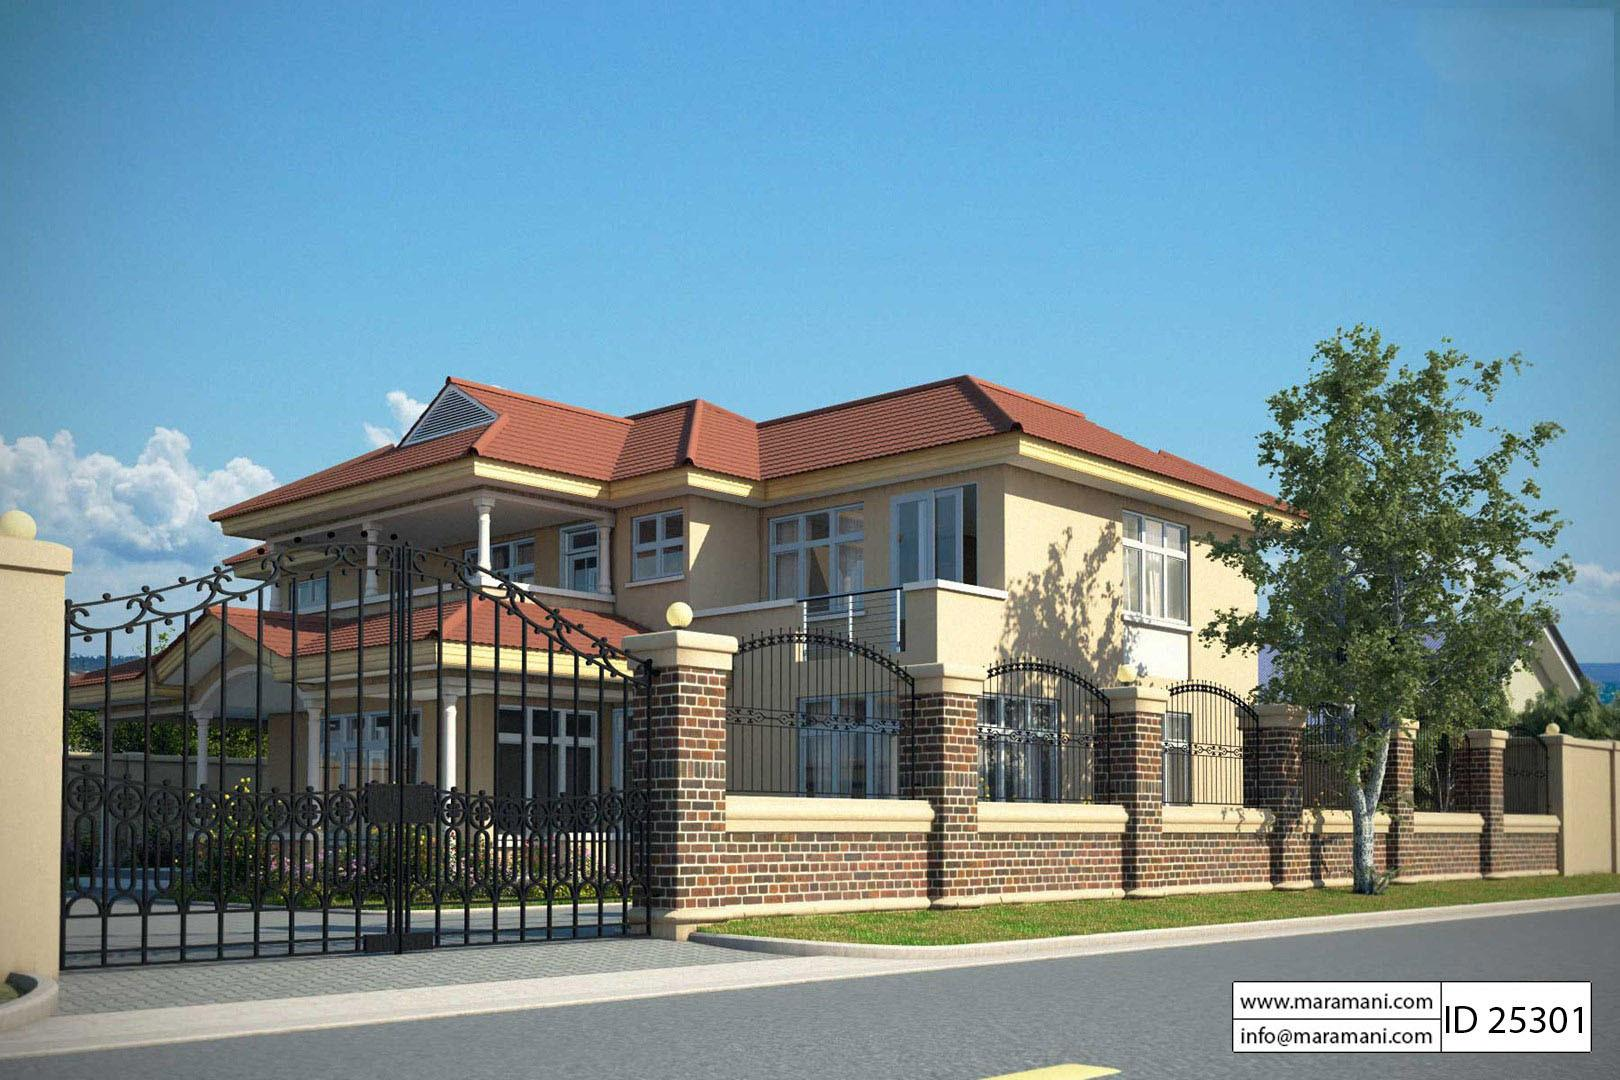 5 Bedroom House Plan 2 Story - Id 25301